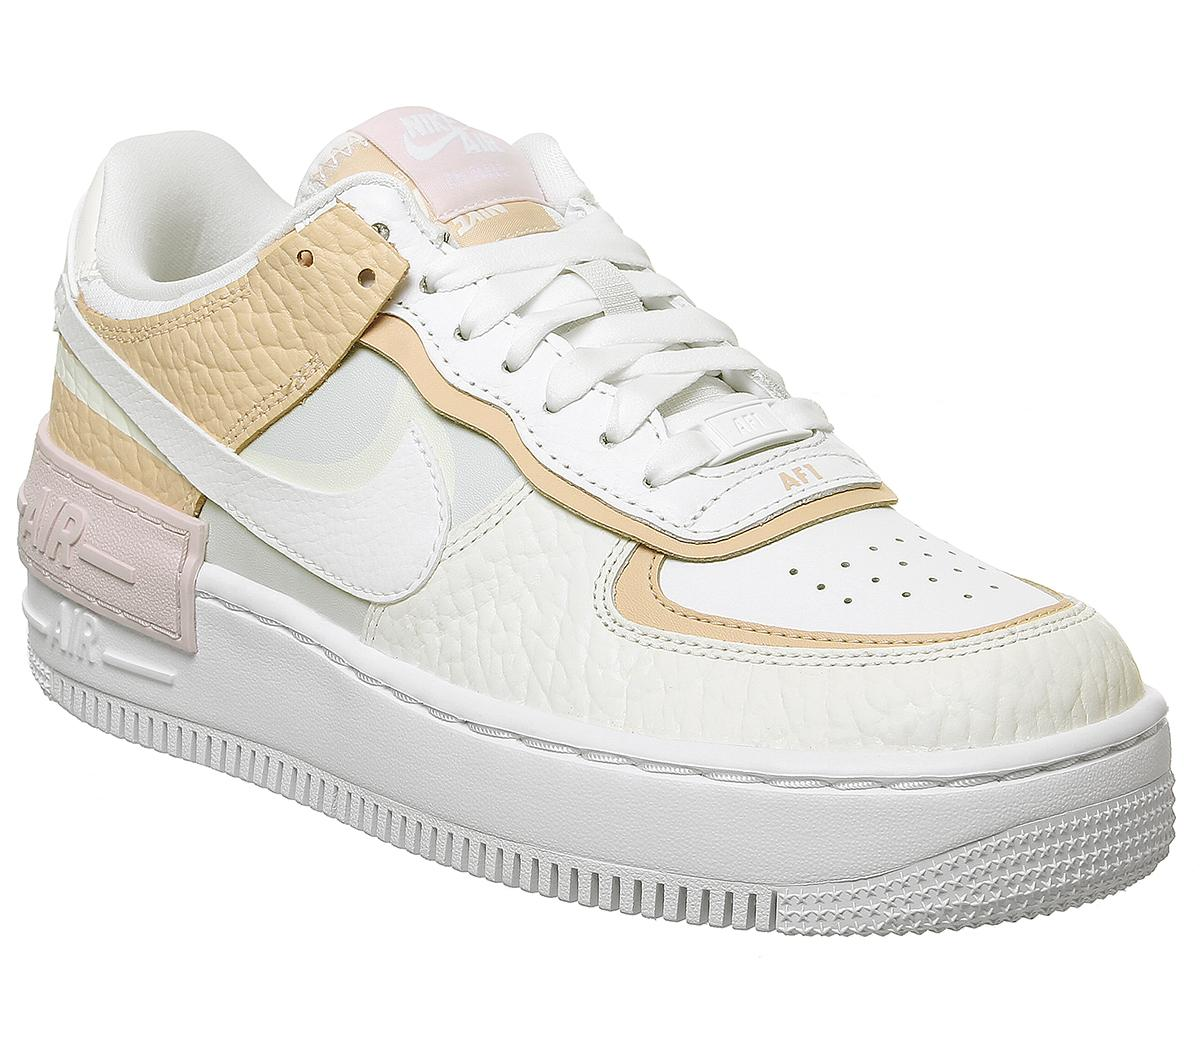 Nike Air Force 1 Shadow Trainers Spruce Aura White Sail Rose Hers Trainers